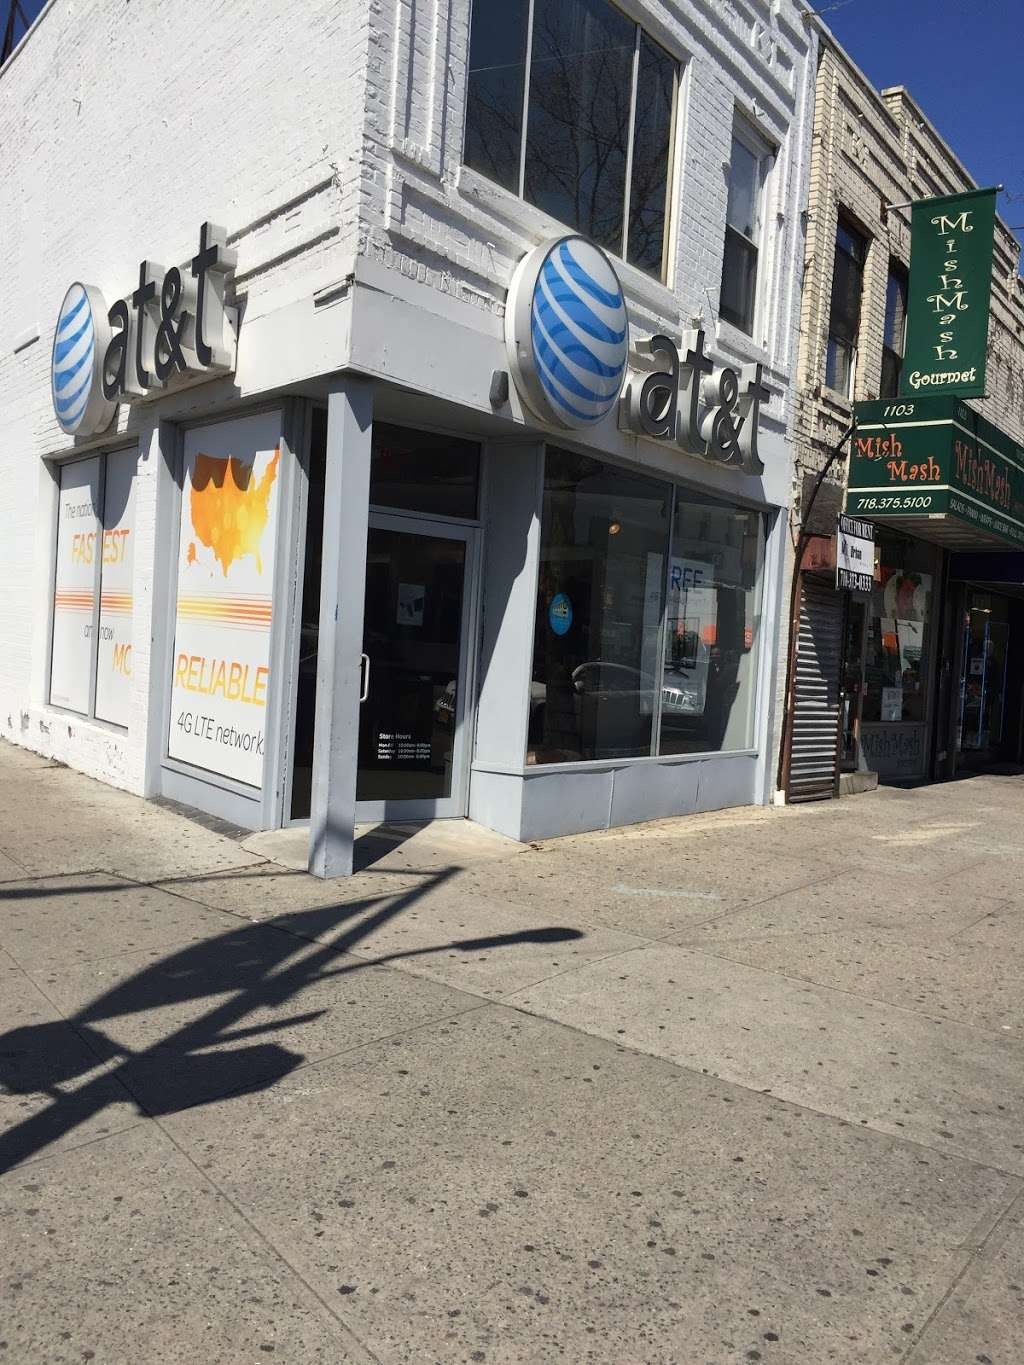 AT&T Store - electronics store  | Photo 2 of 6 | Address: 1101 Kings Hwy, Brooklyn, NY 11229, USA | Phone: (718) 787-0142